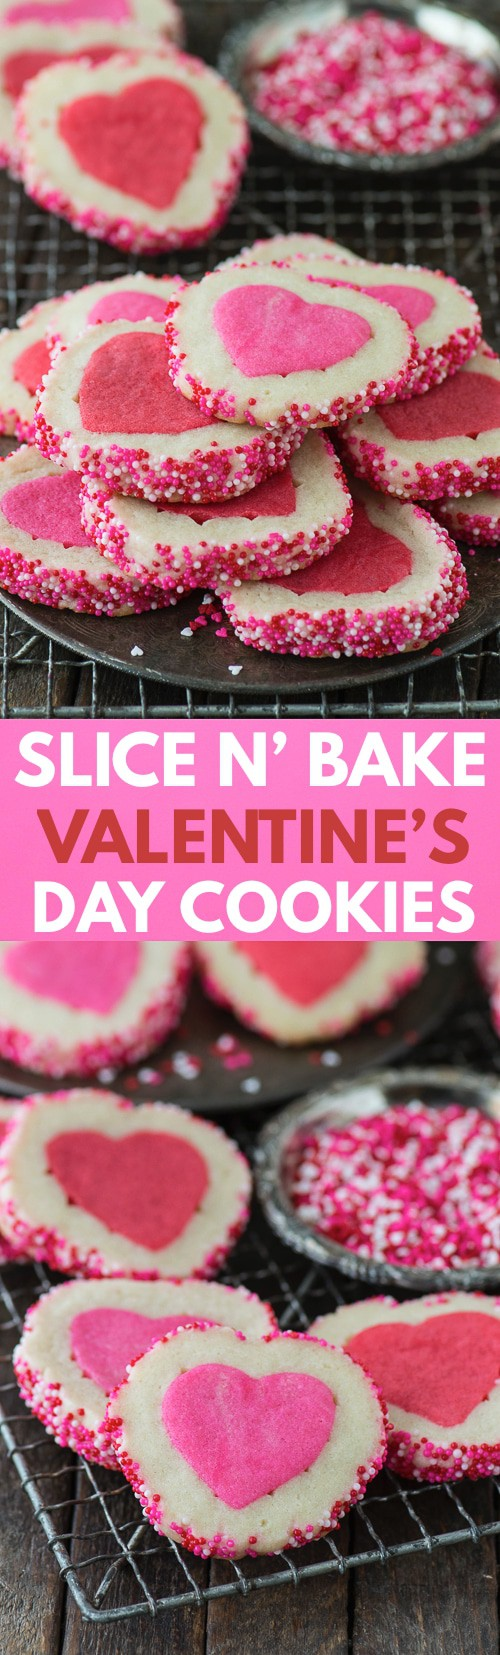 Homemade Valentine's Day Slice N' Bake Cookies with a step by step video!